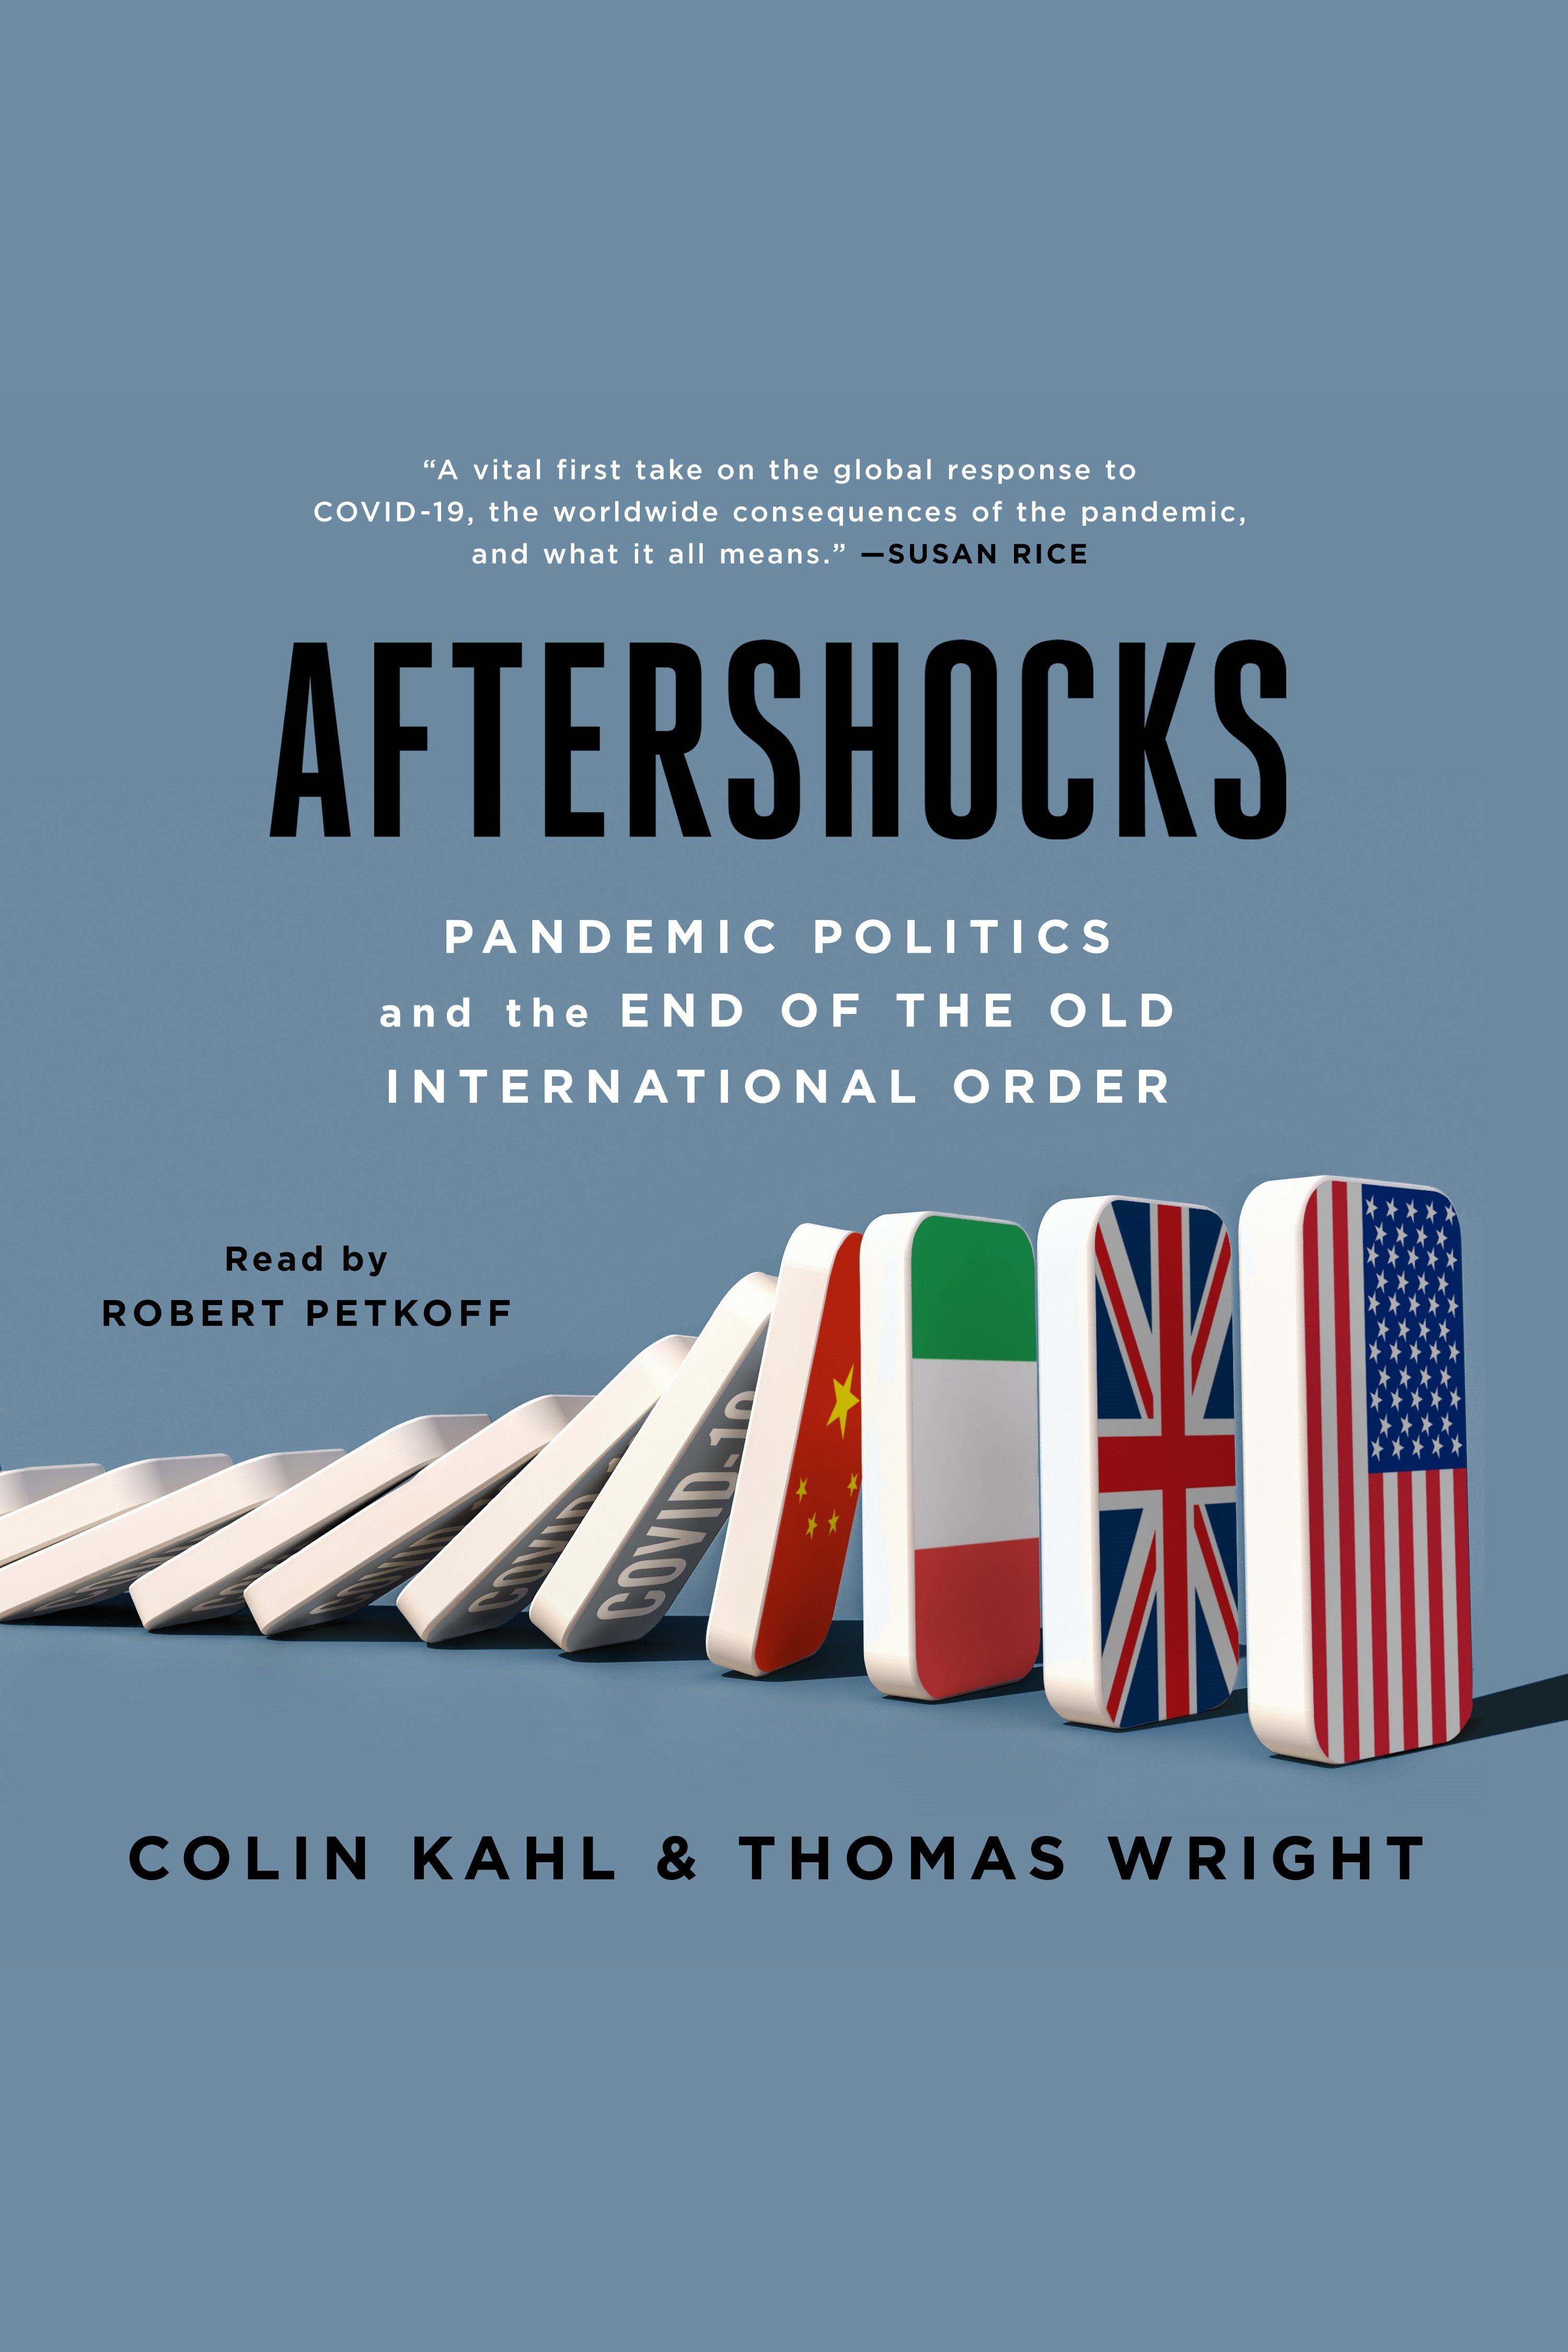 Aftershocks Pandemic Politics and the End of the Old International Order